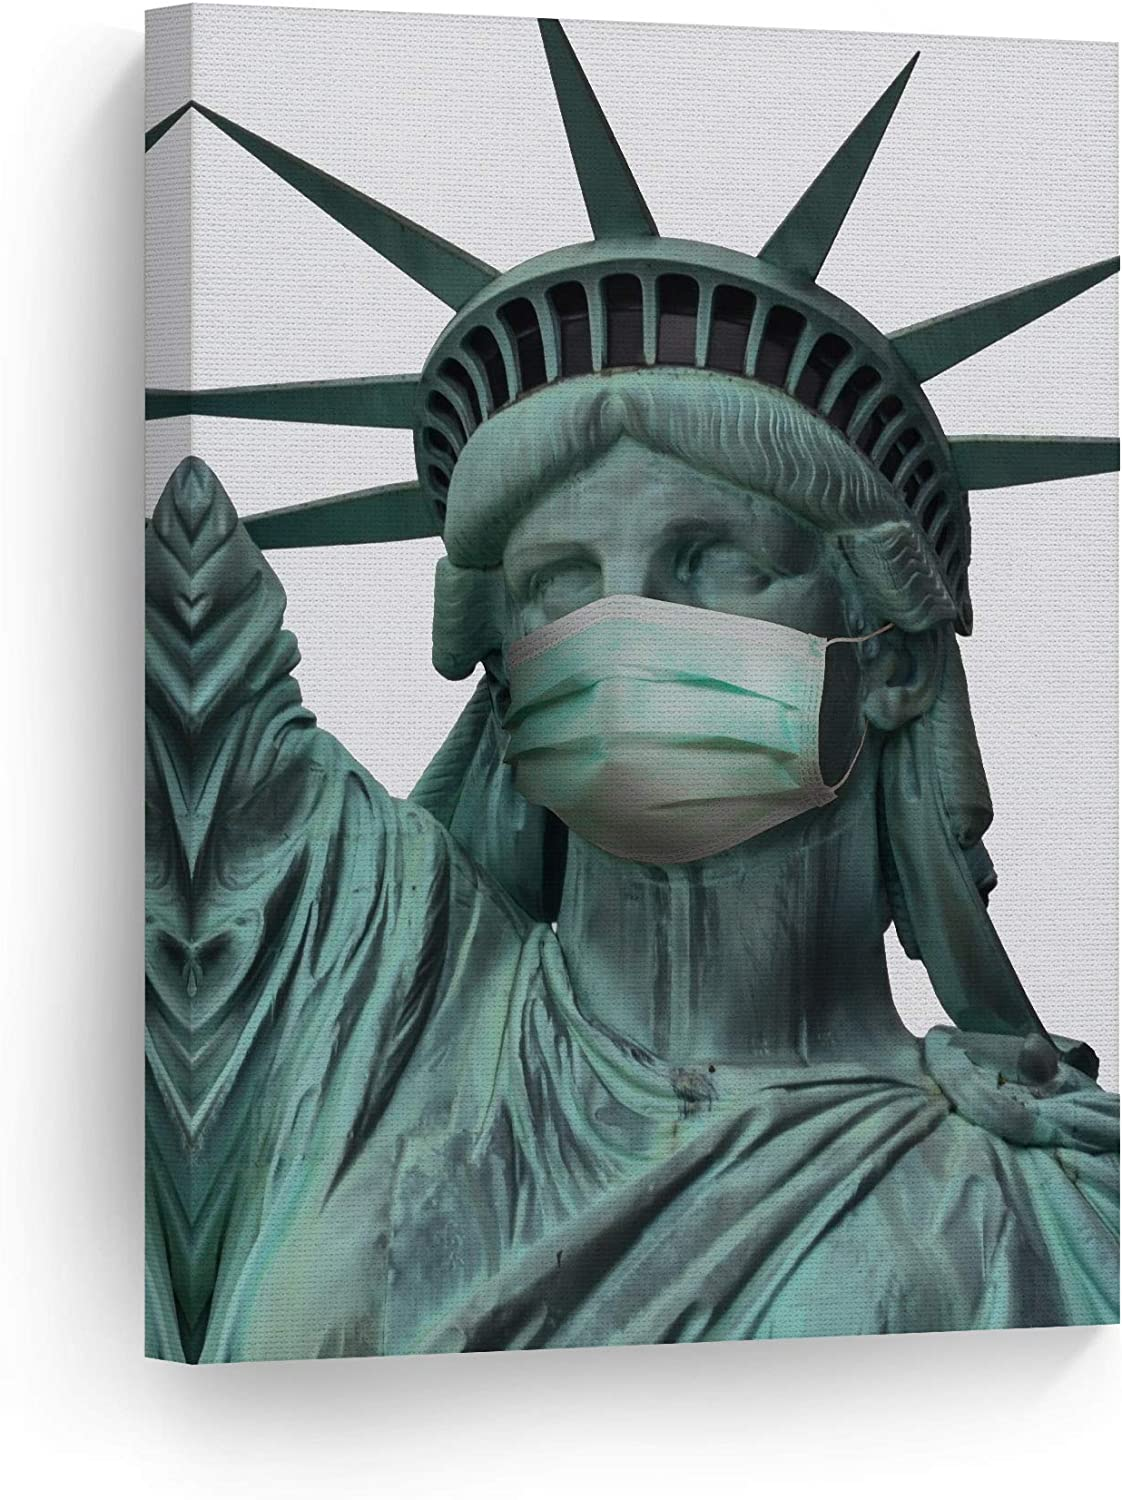 Smile Art Design New York City Masterpiece Statue of Liberty Face Mask Pandemic Inspired Funny Canvas Wall Art Print Paint Living Room Social Distancing Art Home Decor Ready to Hang Made in USA 12x8